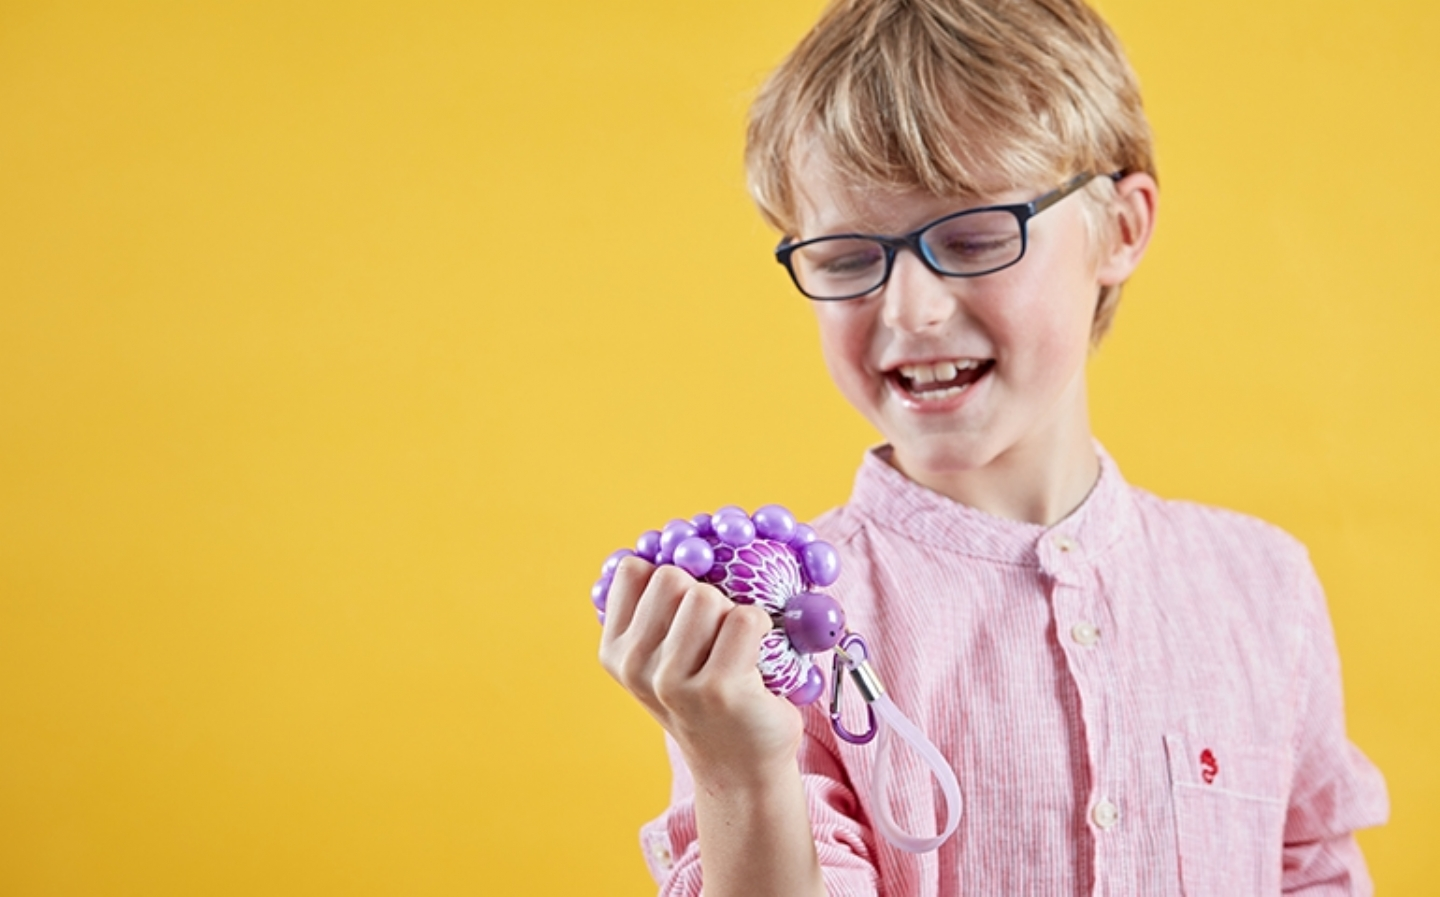 On-trend GOOBALLZ slimey mesh balls for kids launched by Keycraft